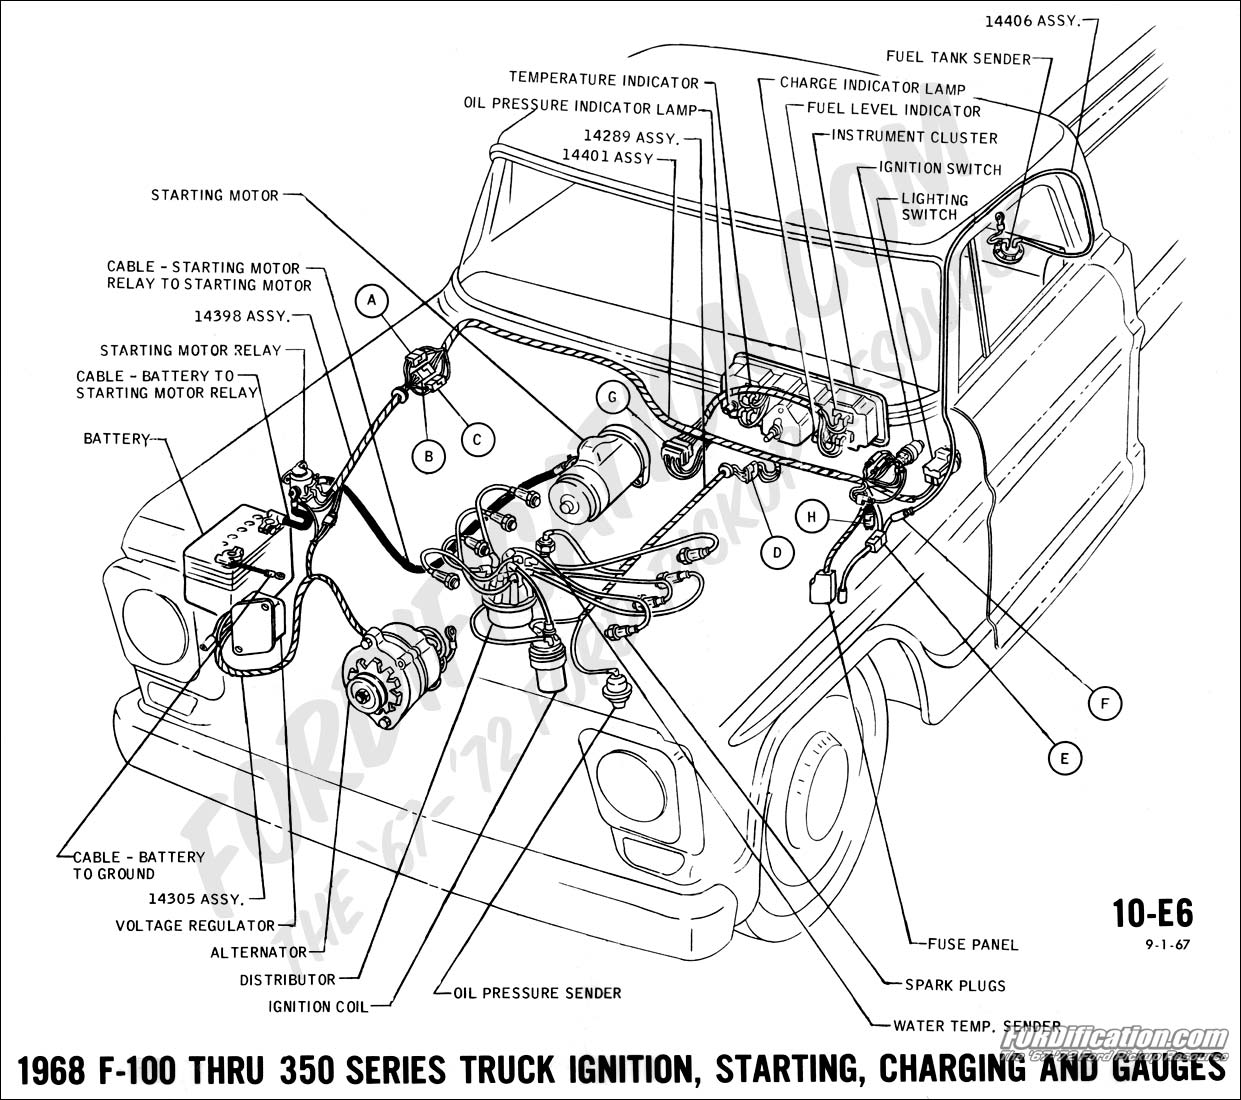 ford f 350 super duty wiring diagram ford truck technical drawings and schematics section h #14